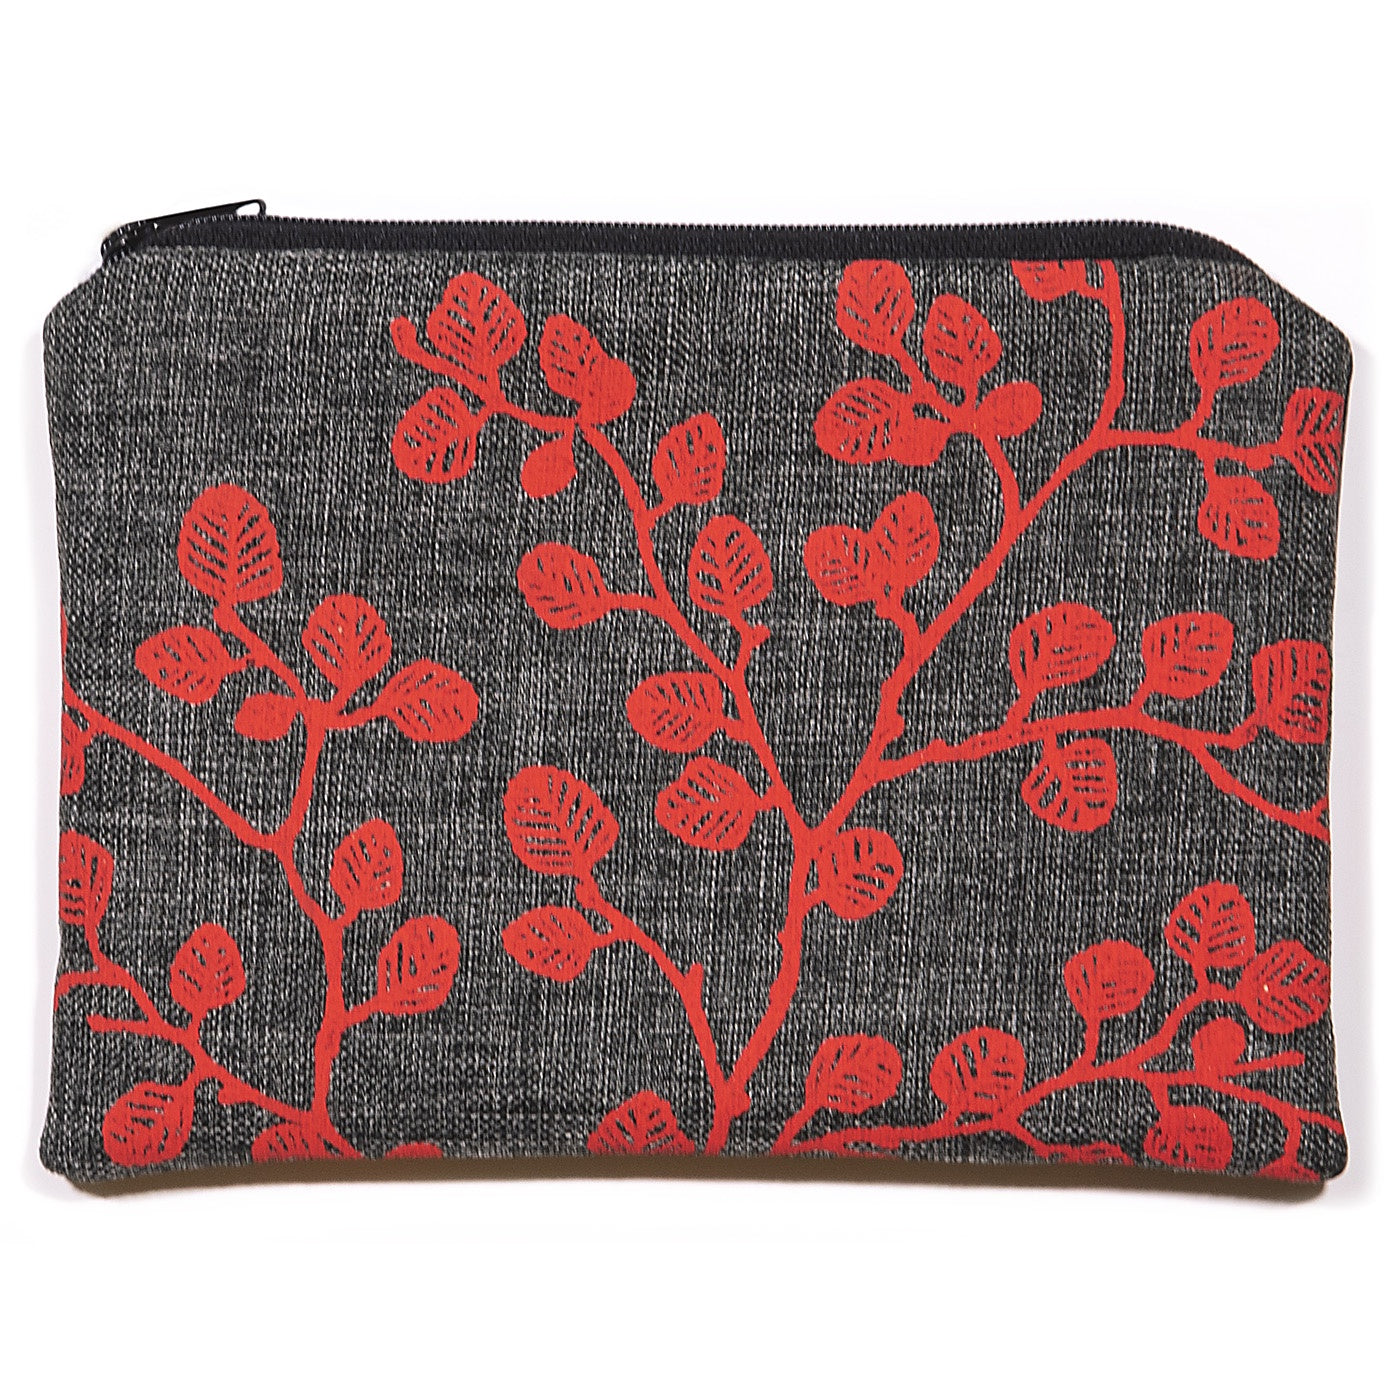 Stalley Textile Co - Zip Purse - Large - Fagus - Red on Charcoal